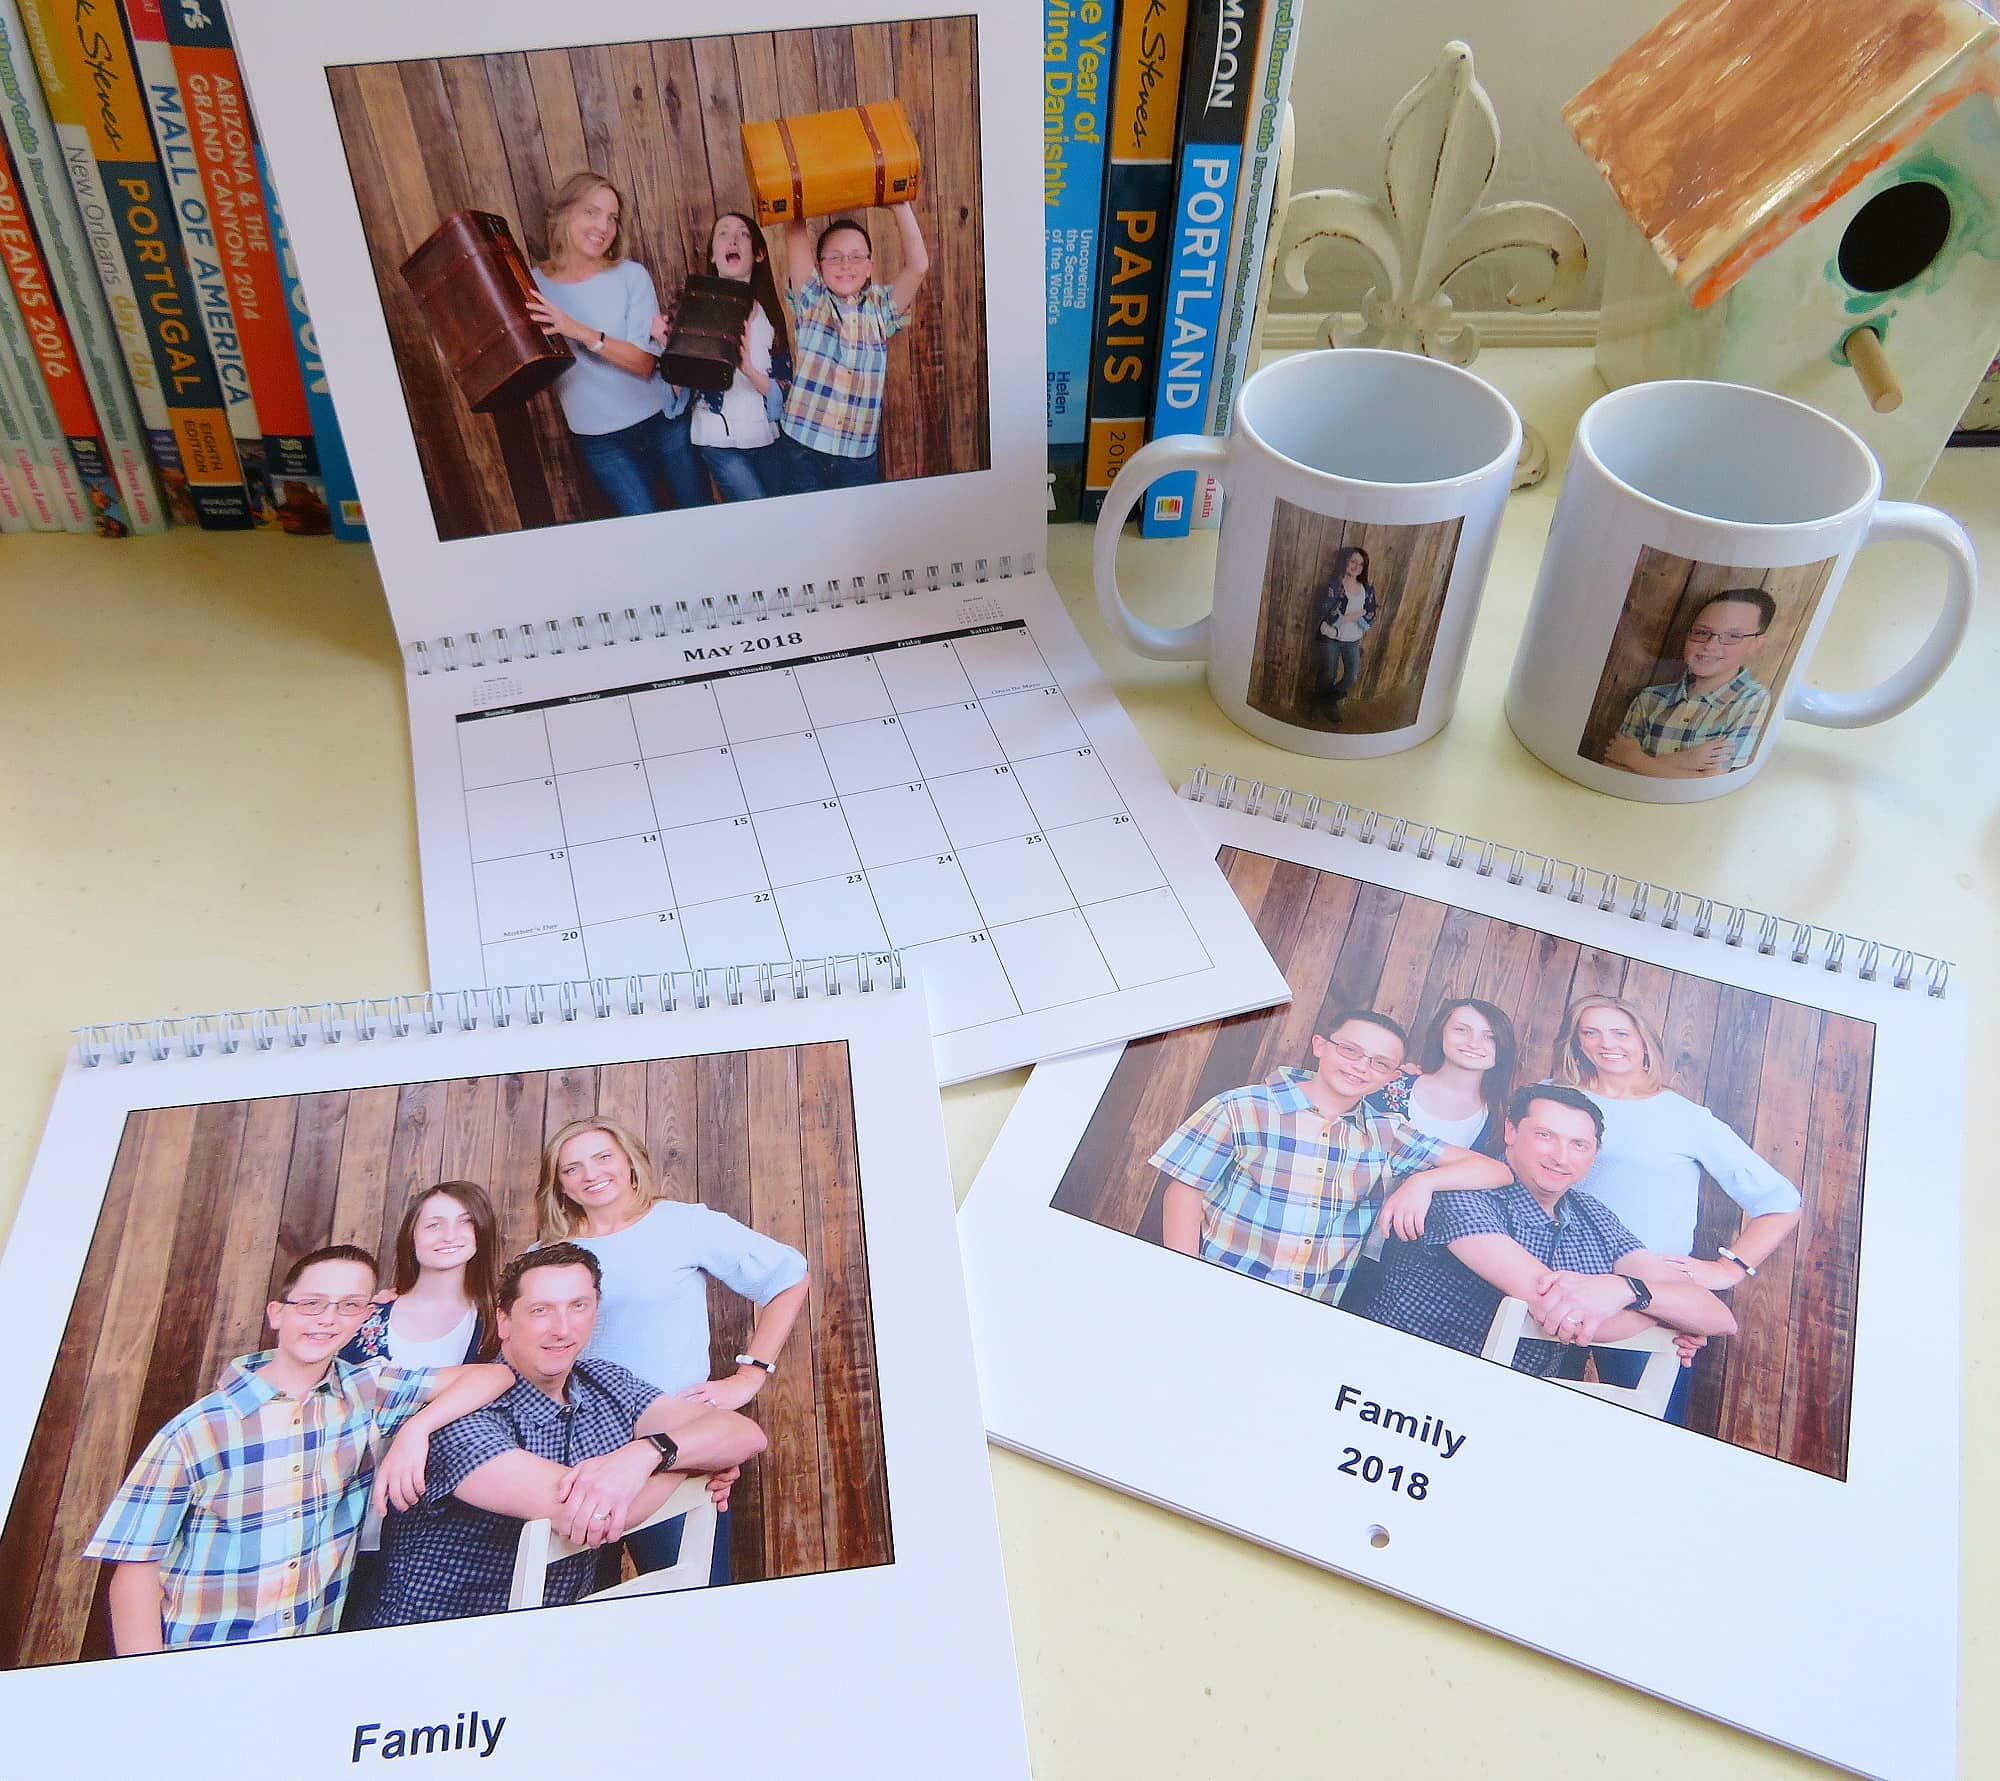 I couldn't resist buying some Portrait Studio photo gifts like calendars and coffee mugs